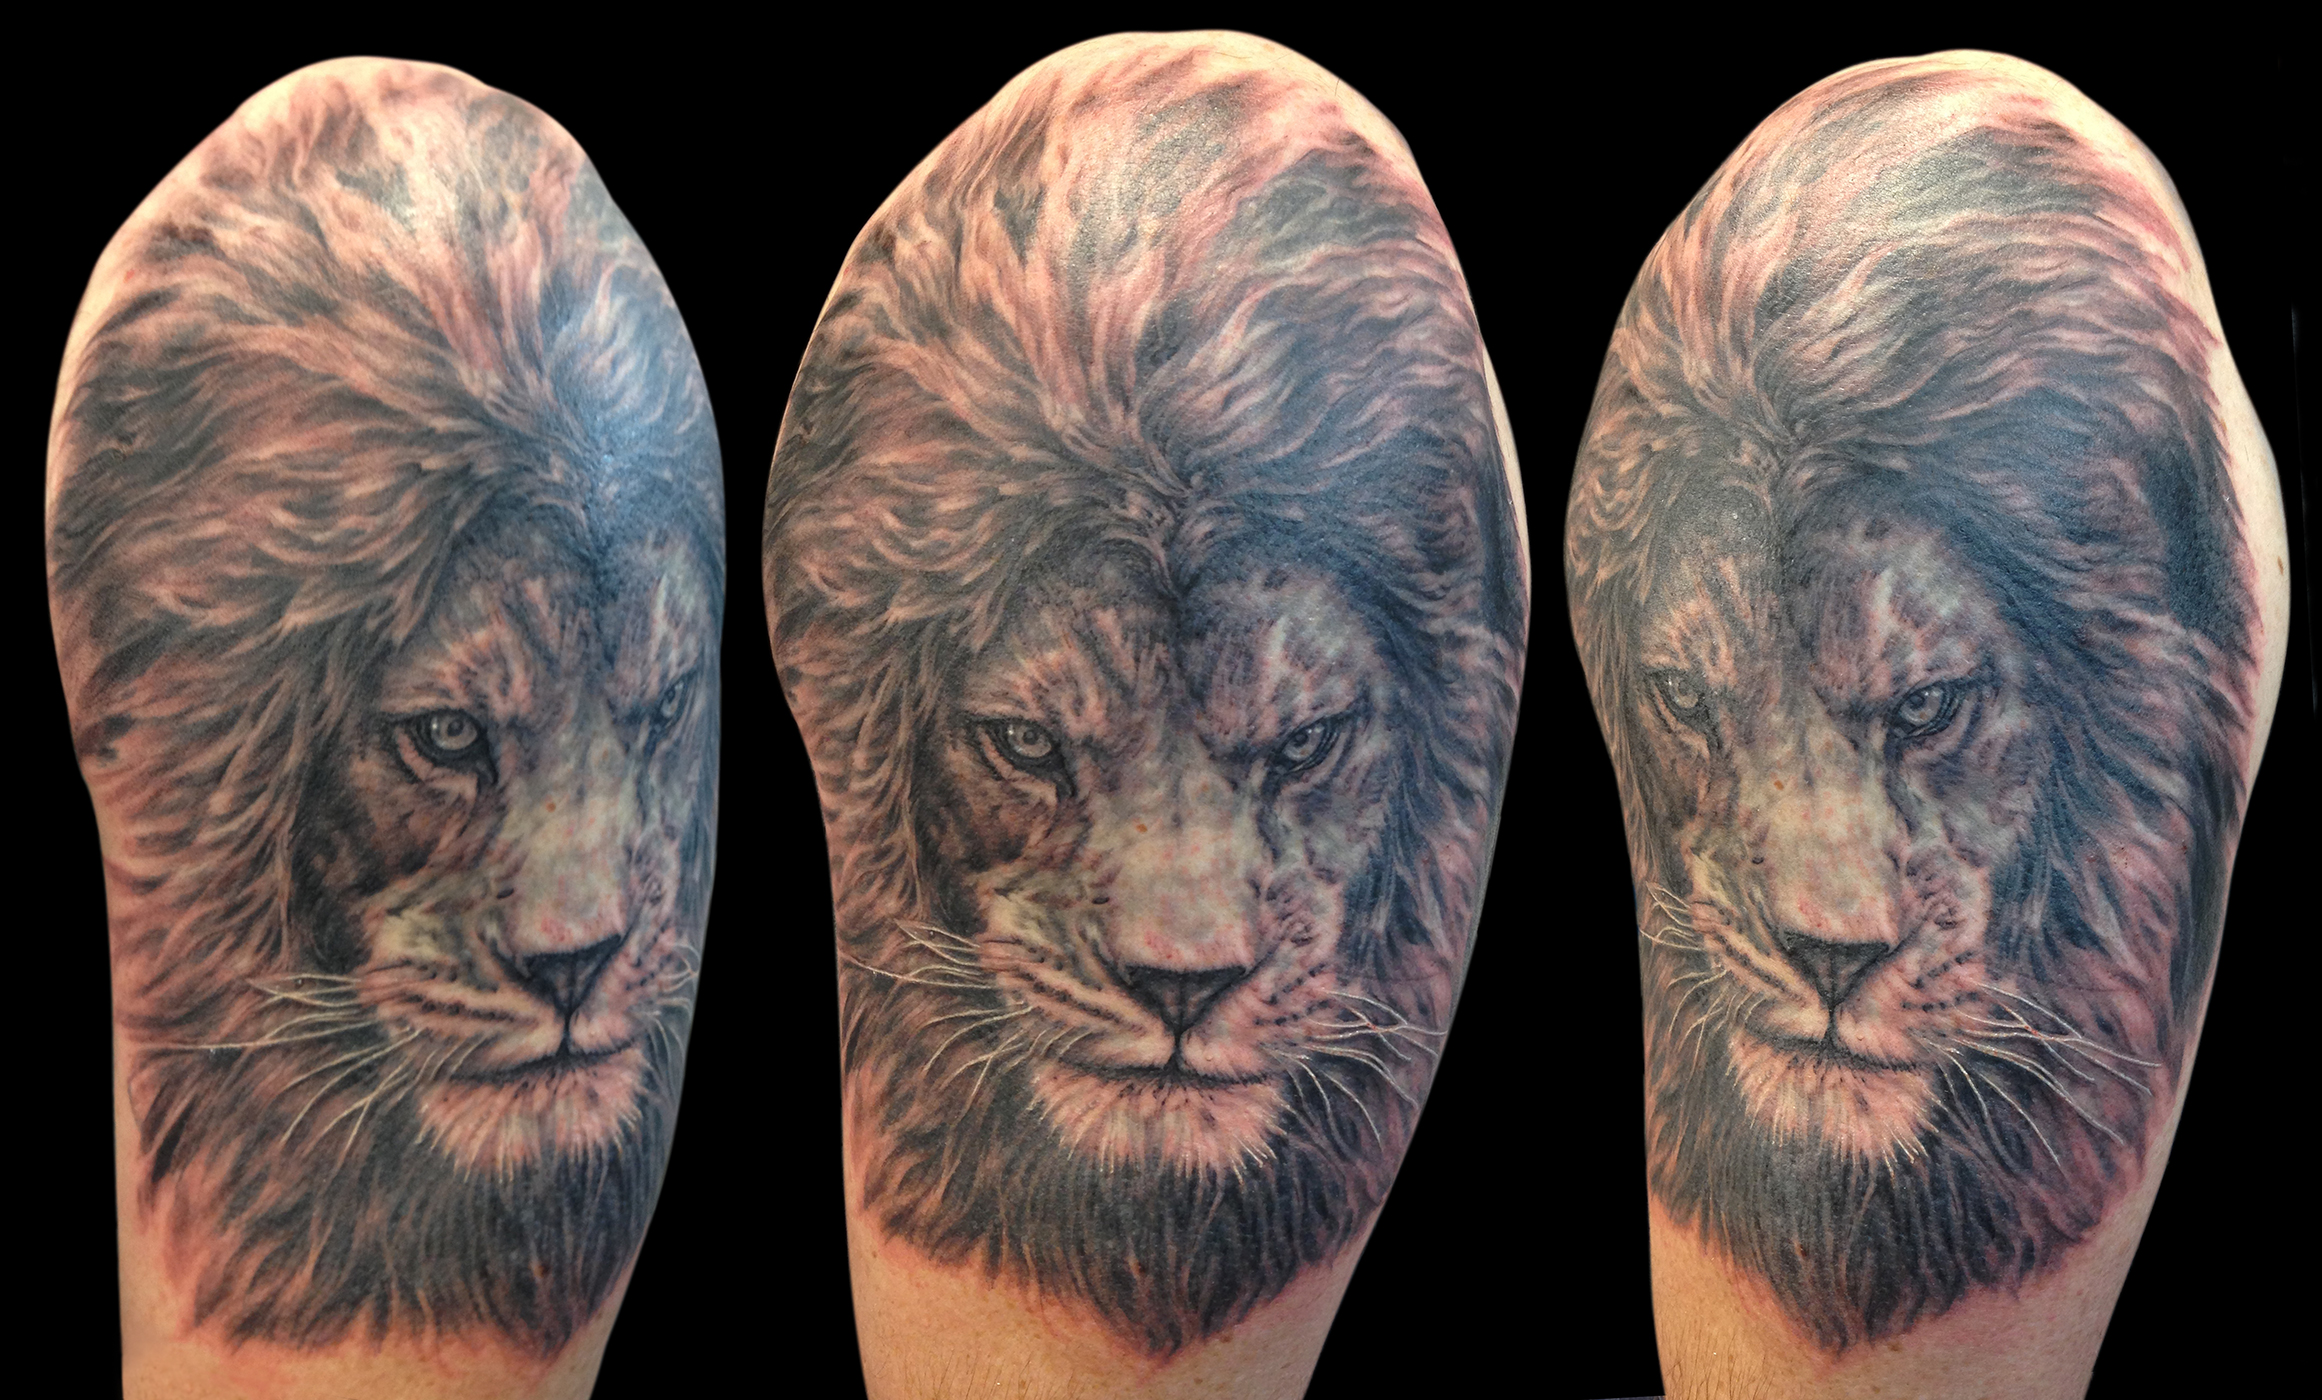 Black and Grey Realistic Lion Portrait Tattoo, multi angle from sides and top